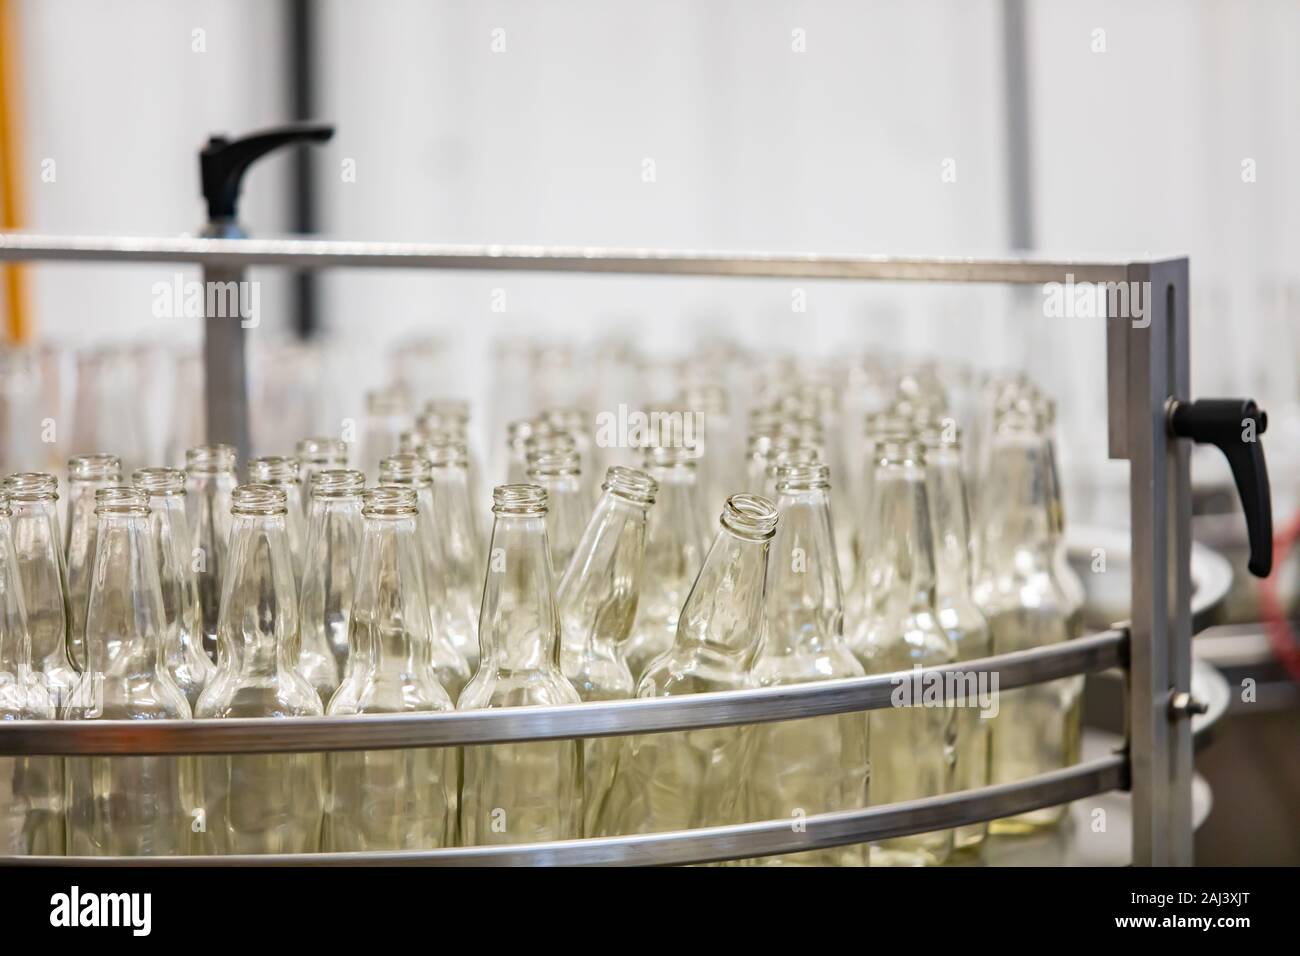 a lot of new white glass empty beer bottles on machine, selective focus close up view, conveyor belt craft brewery factory microbrewery Stock Photo